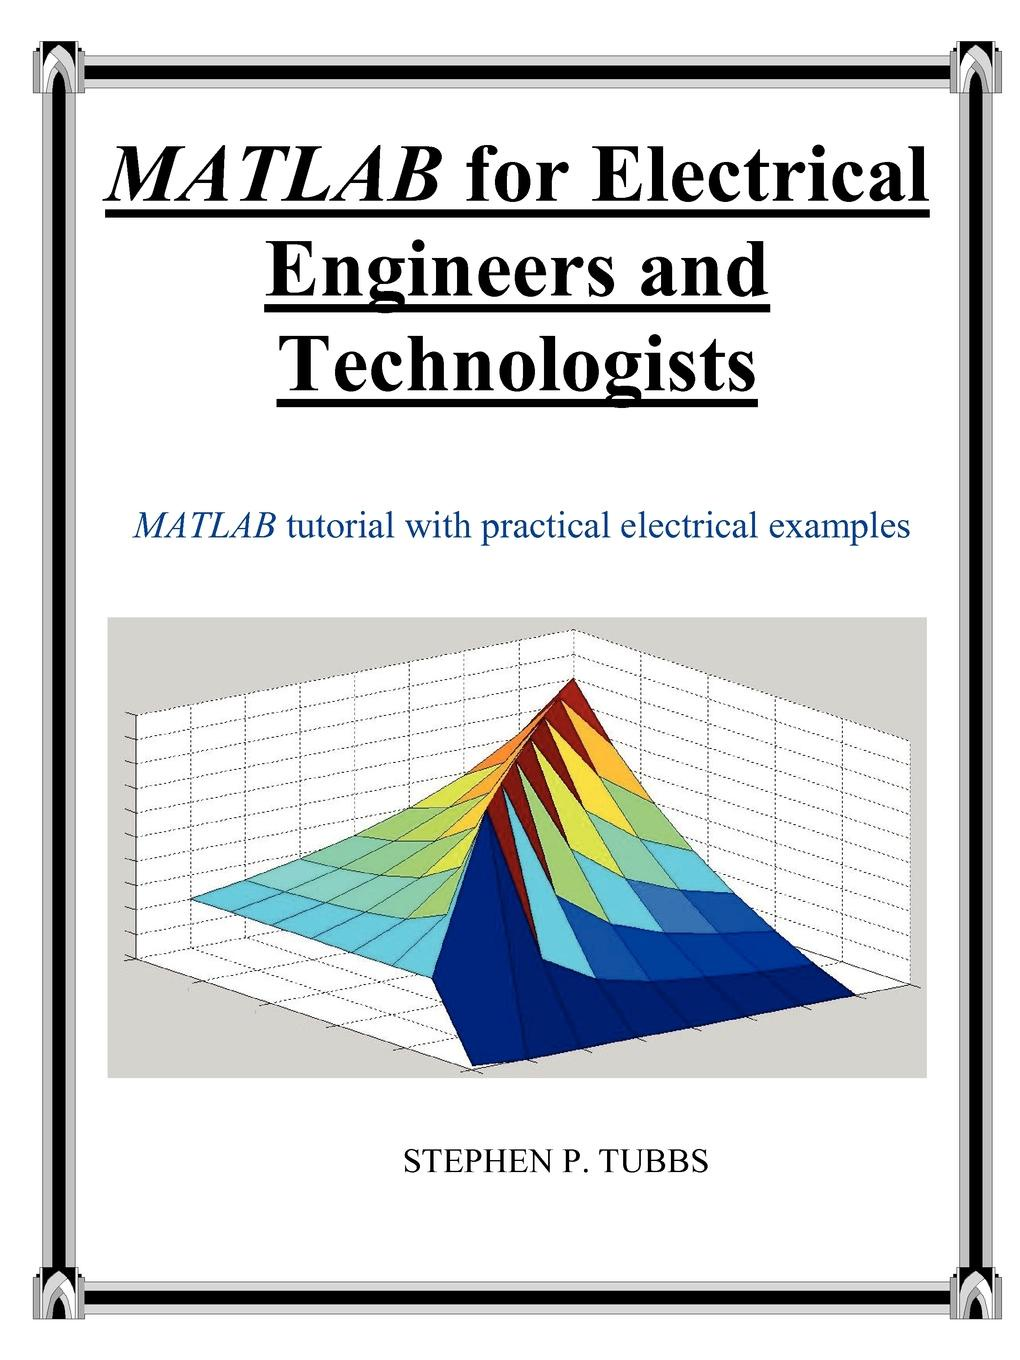 Stephen Philip Tubbs. MATLAB for Electrical Engineers and Technologists